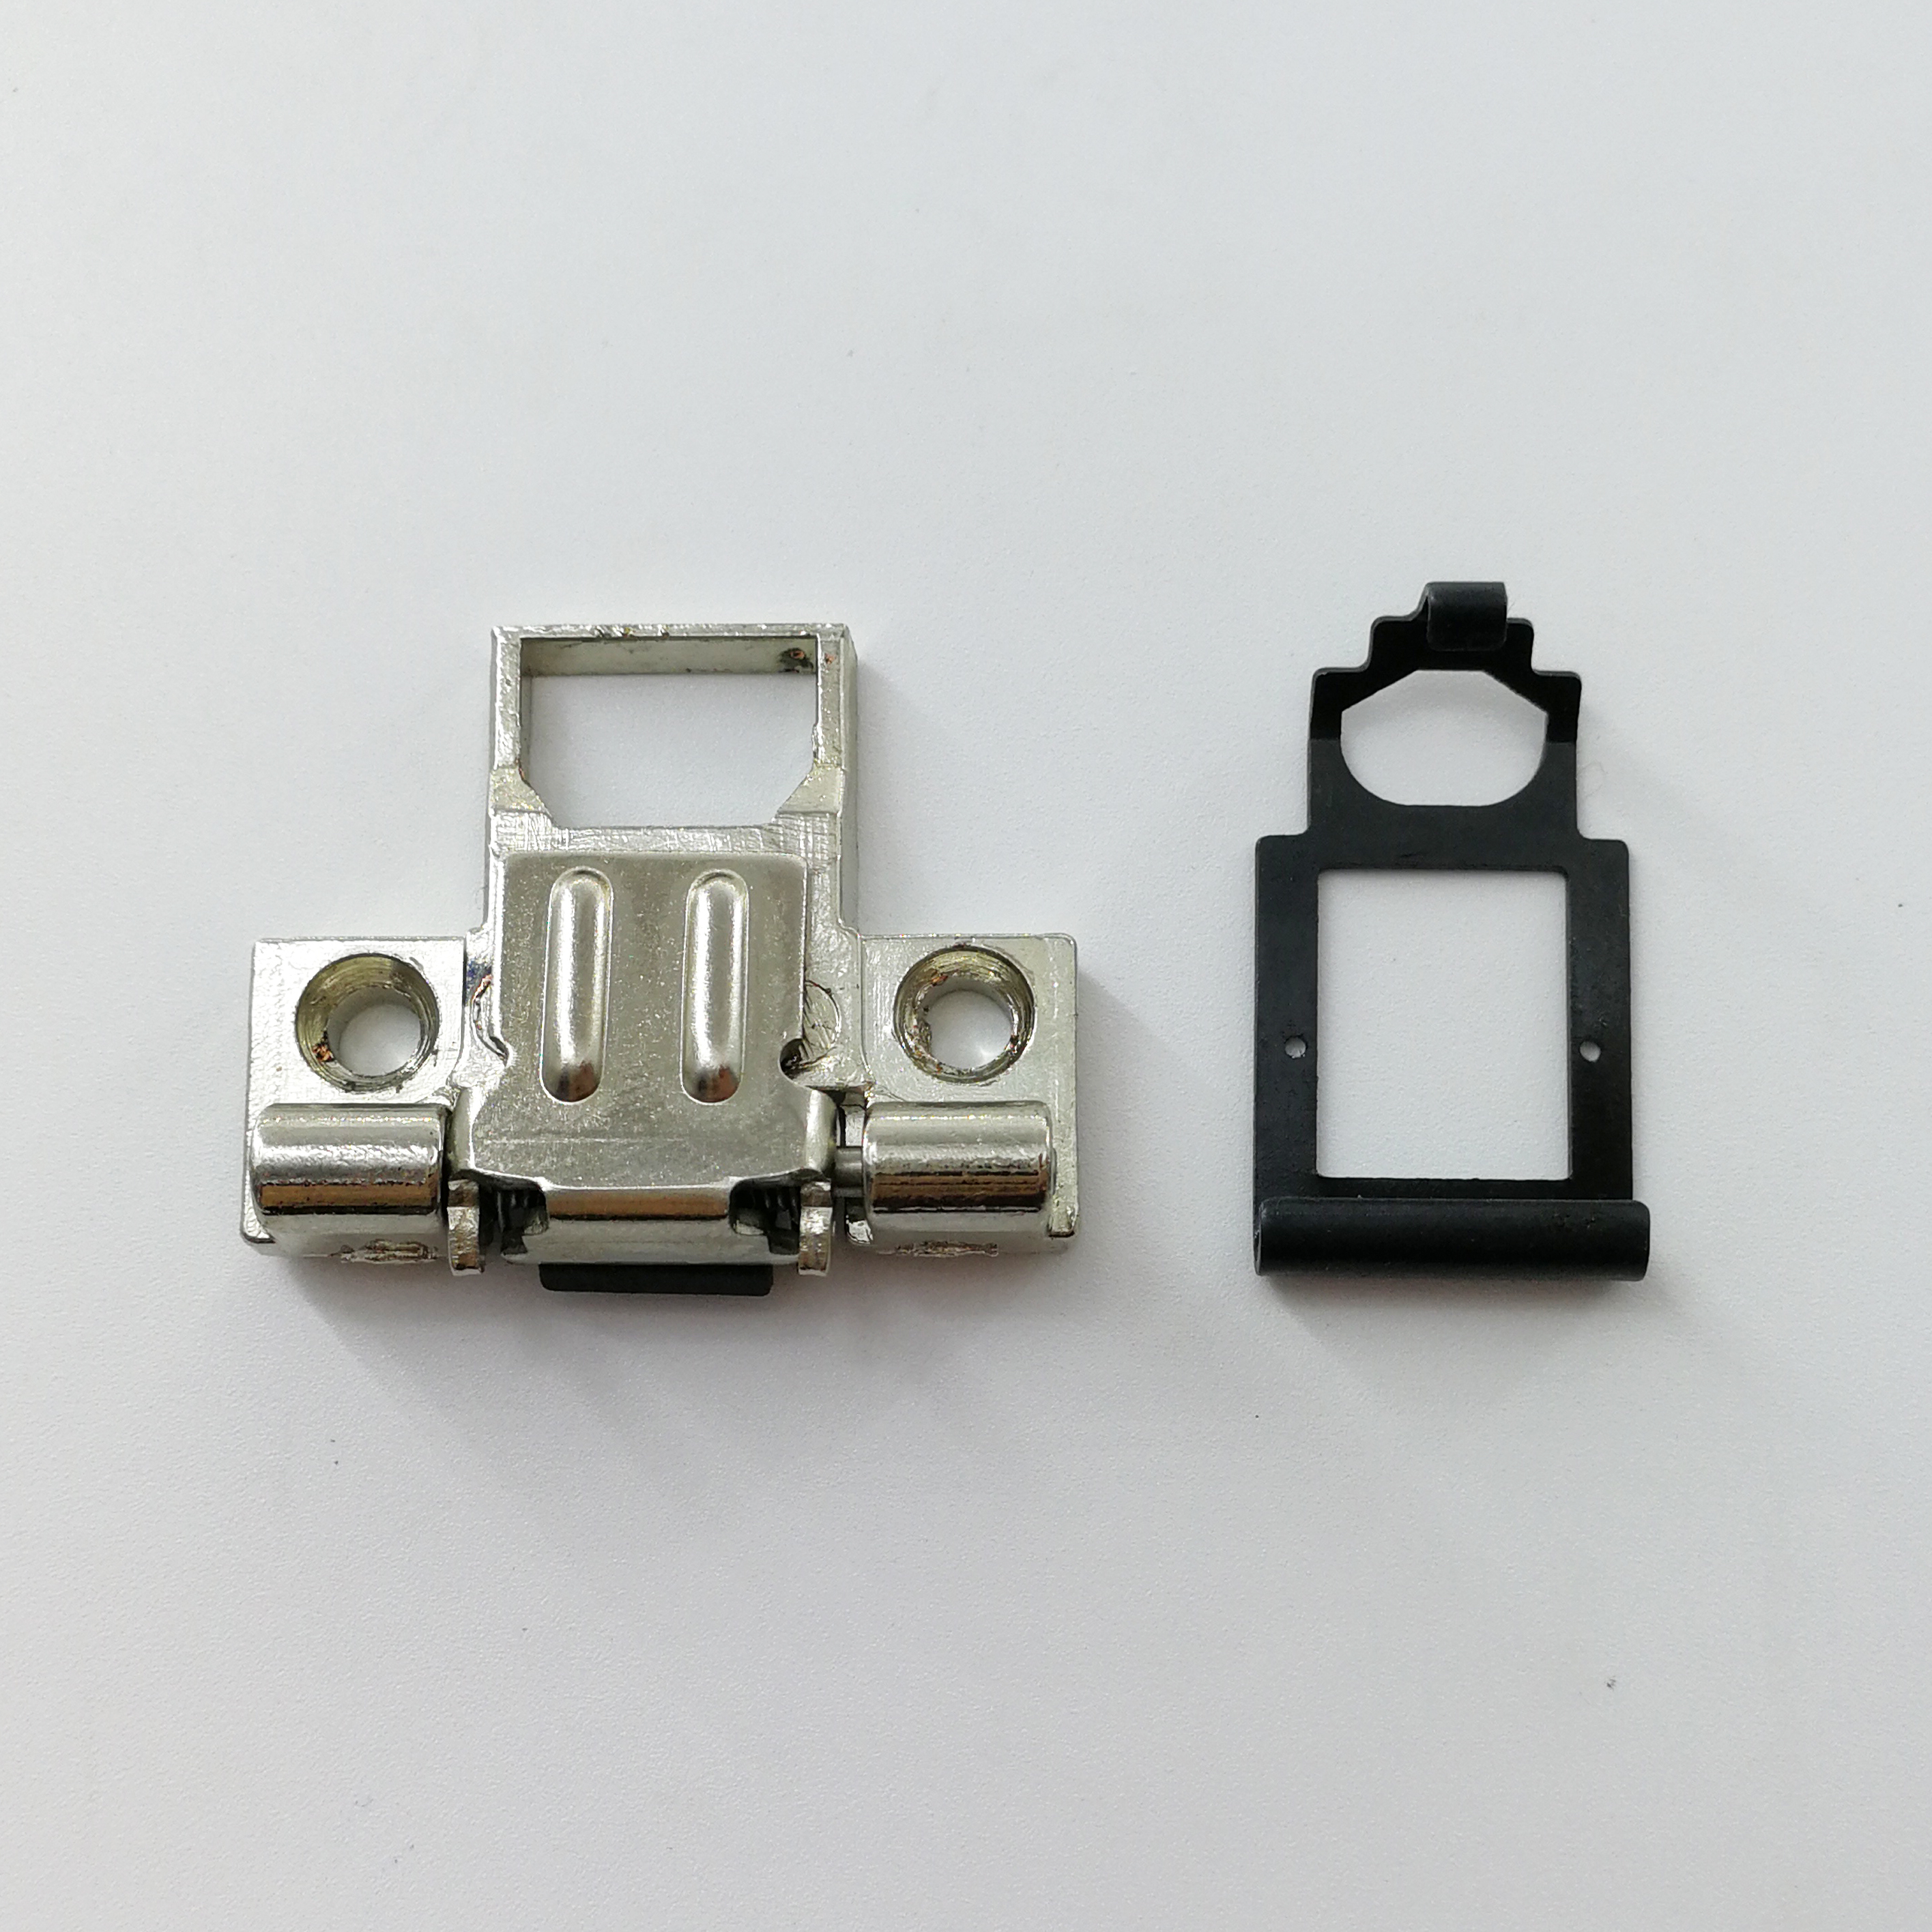 Pet clipper parts Replacement hinger, hinger Gasket and lock sets fit andis agc clipper tesoura de tosa fenice